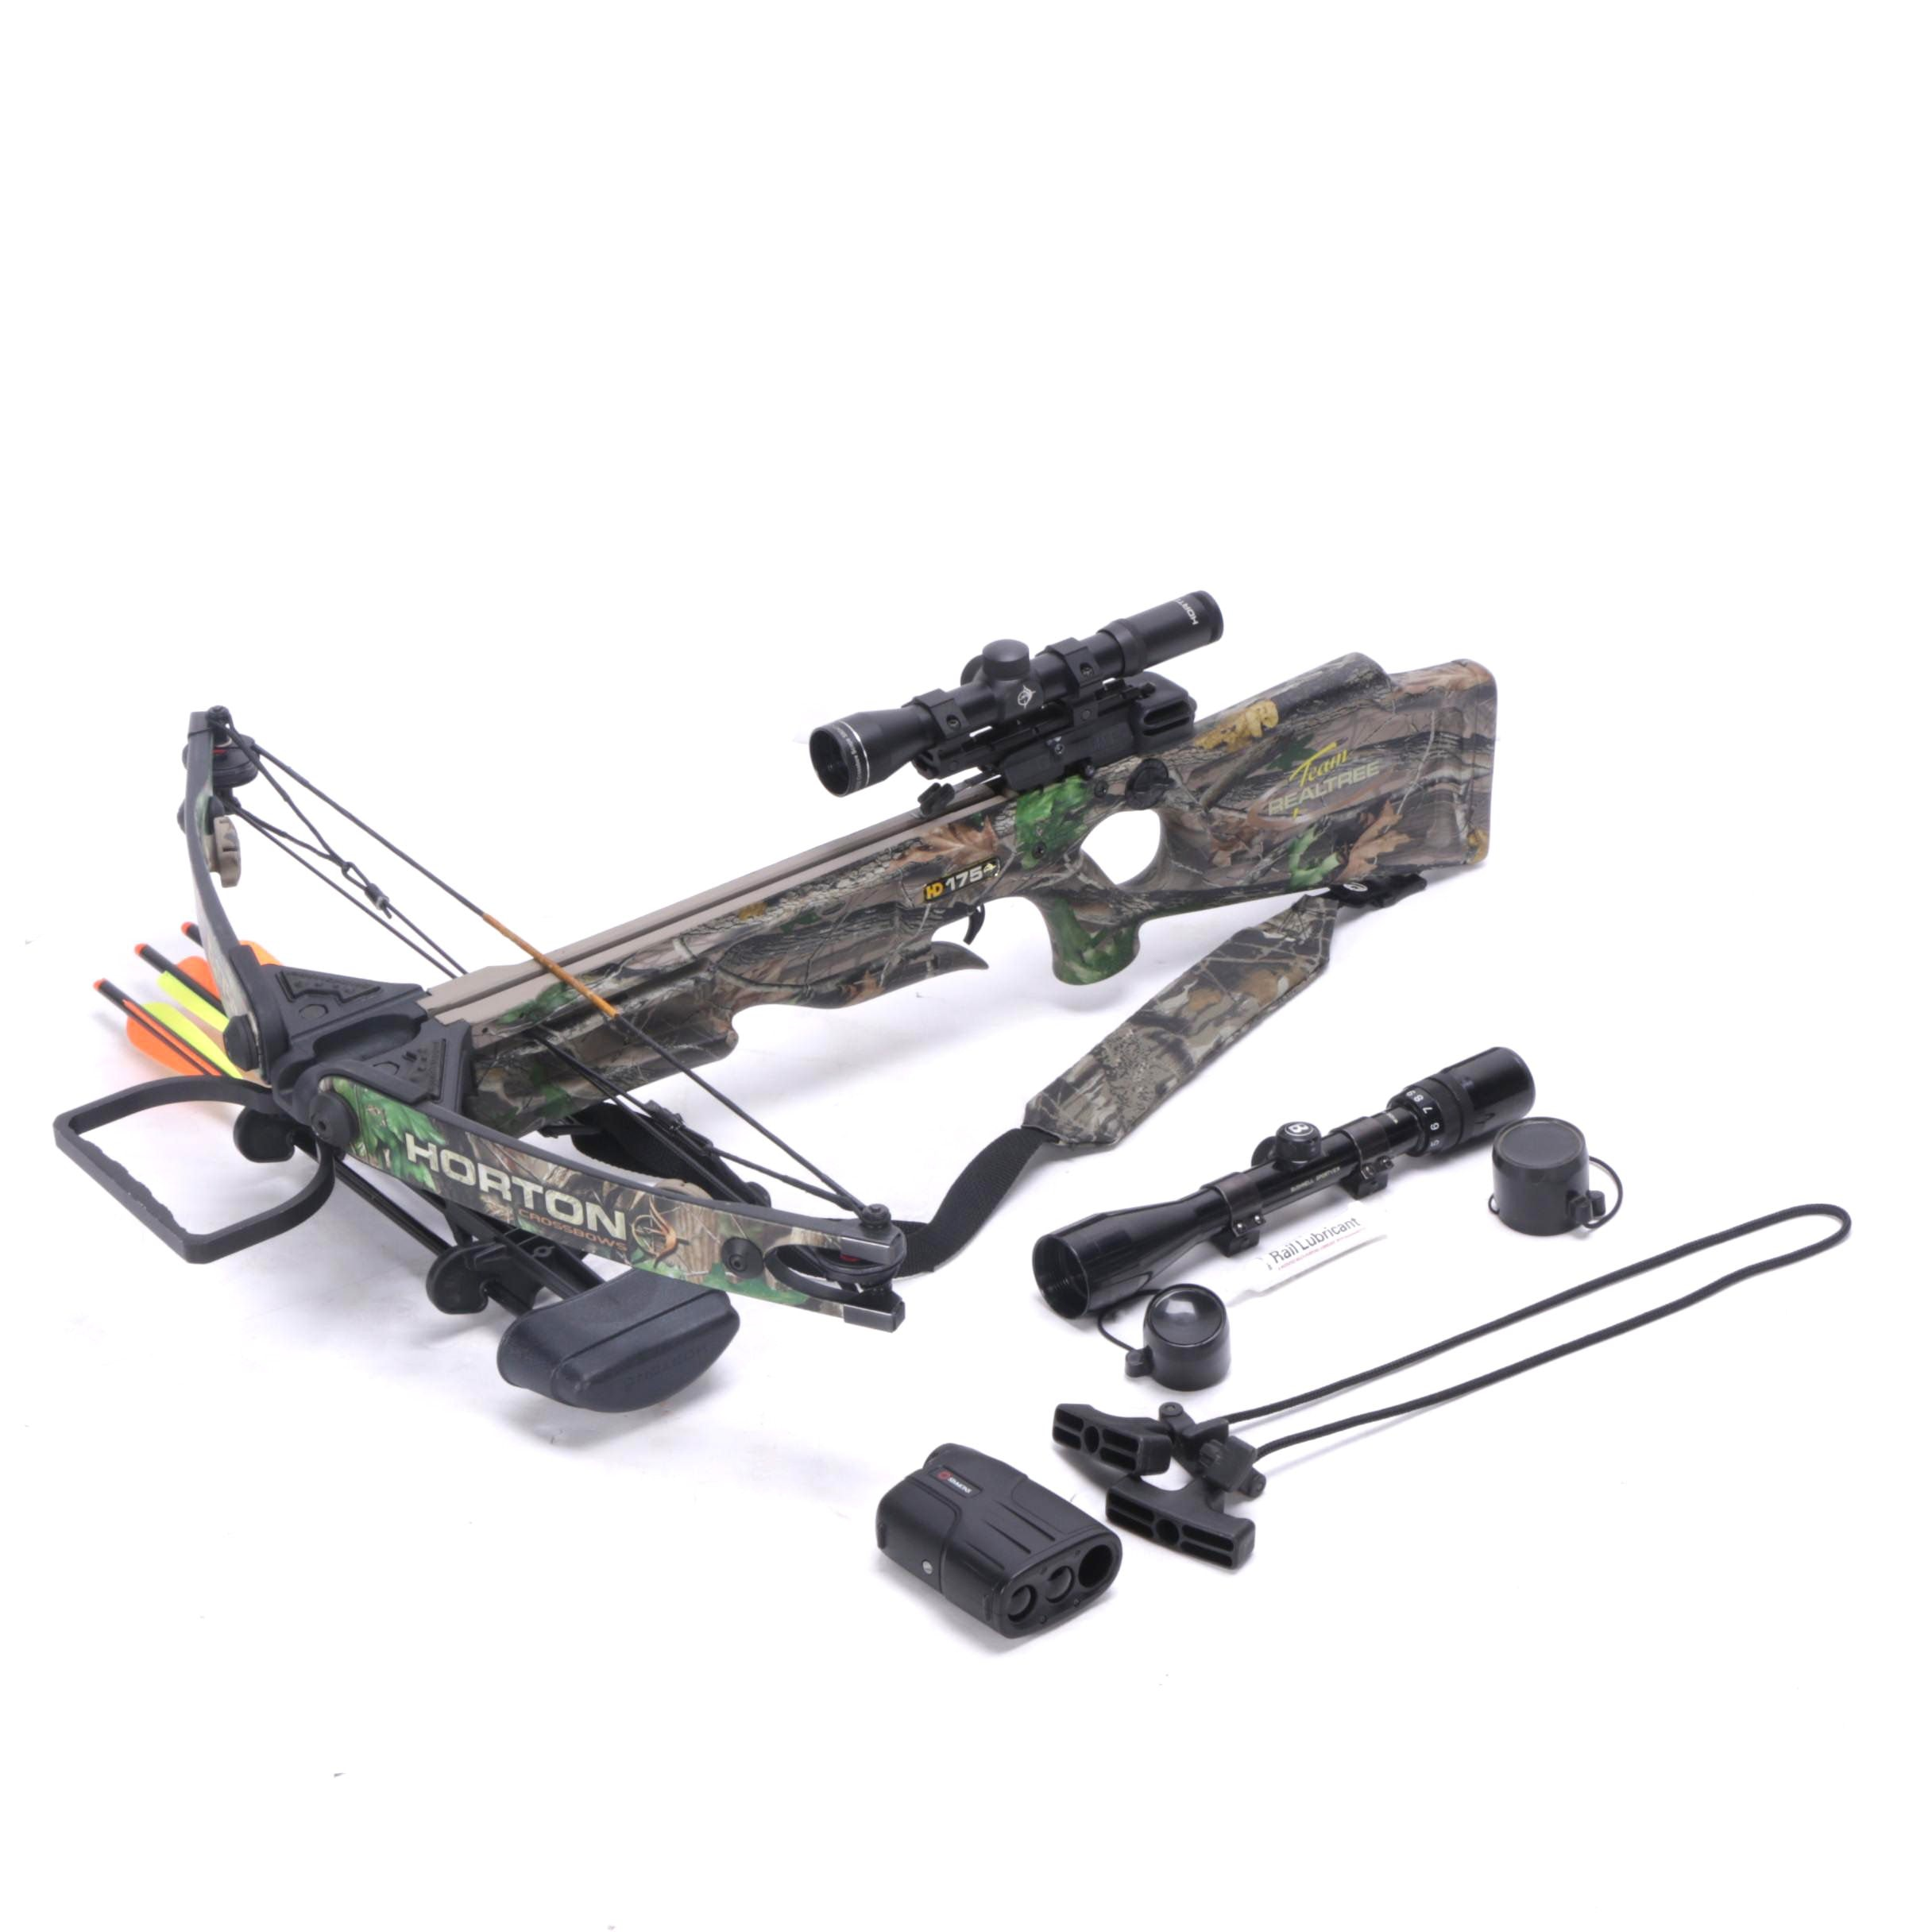 Horton Team Realtree HD 175 Crossbow with Practice Points and Scopes